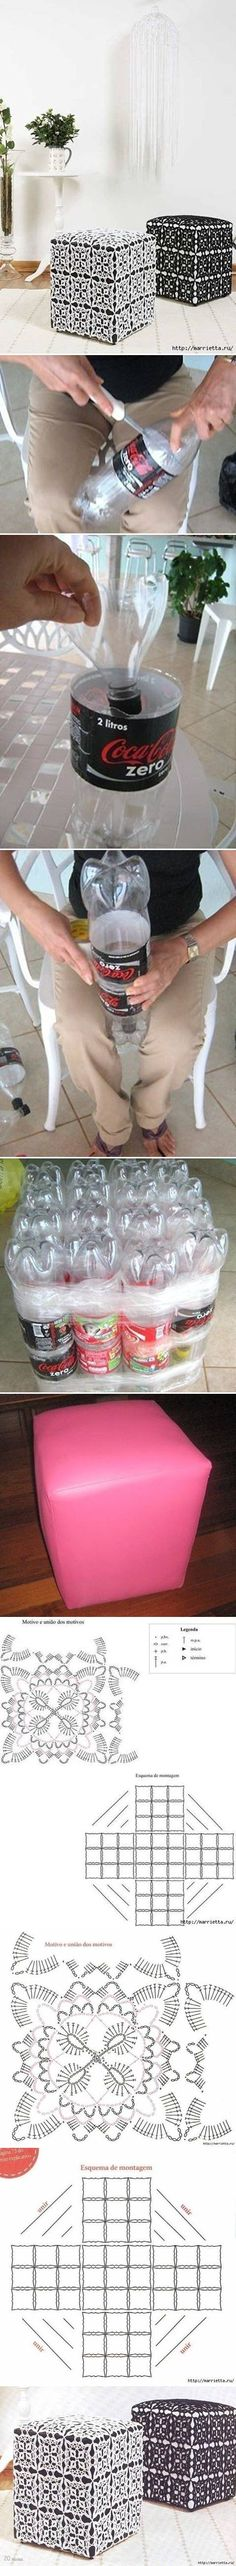 DIY Ottoman Out of Plastic Bottles